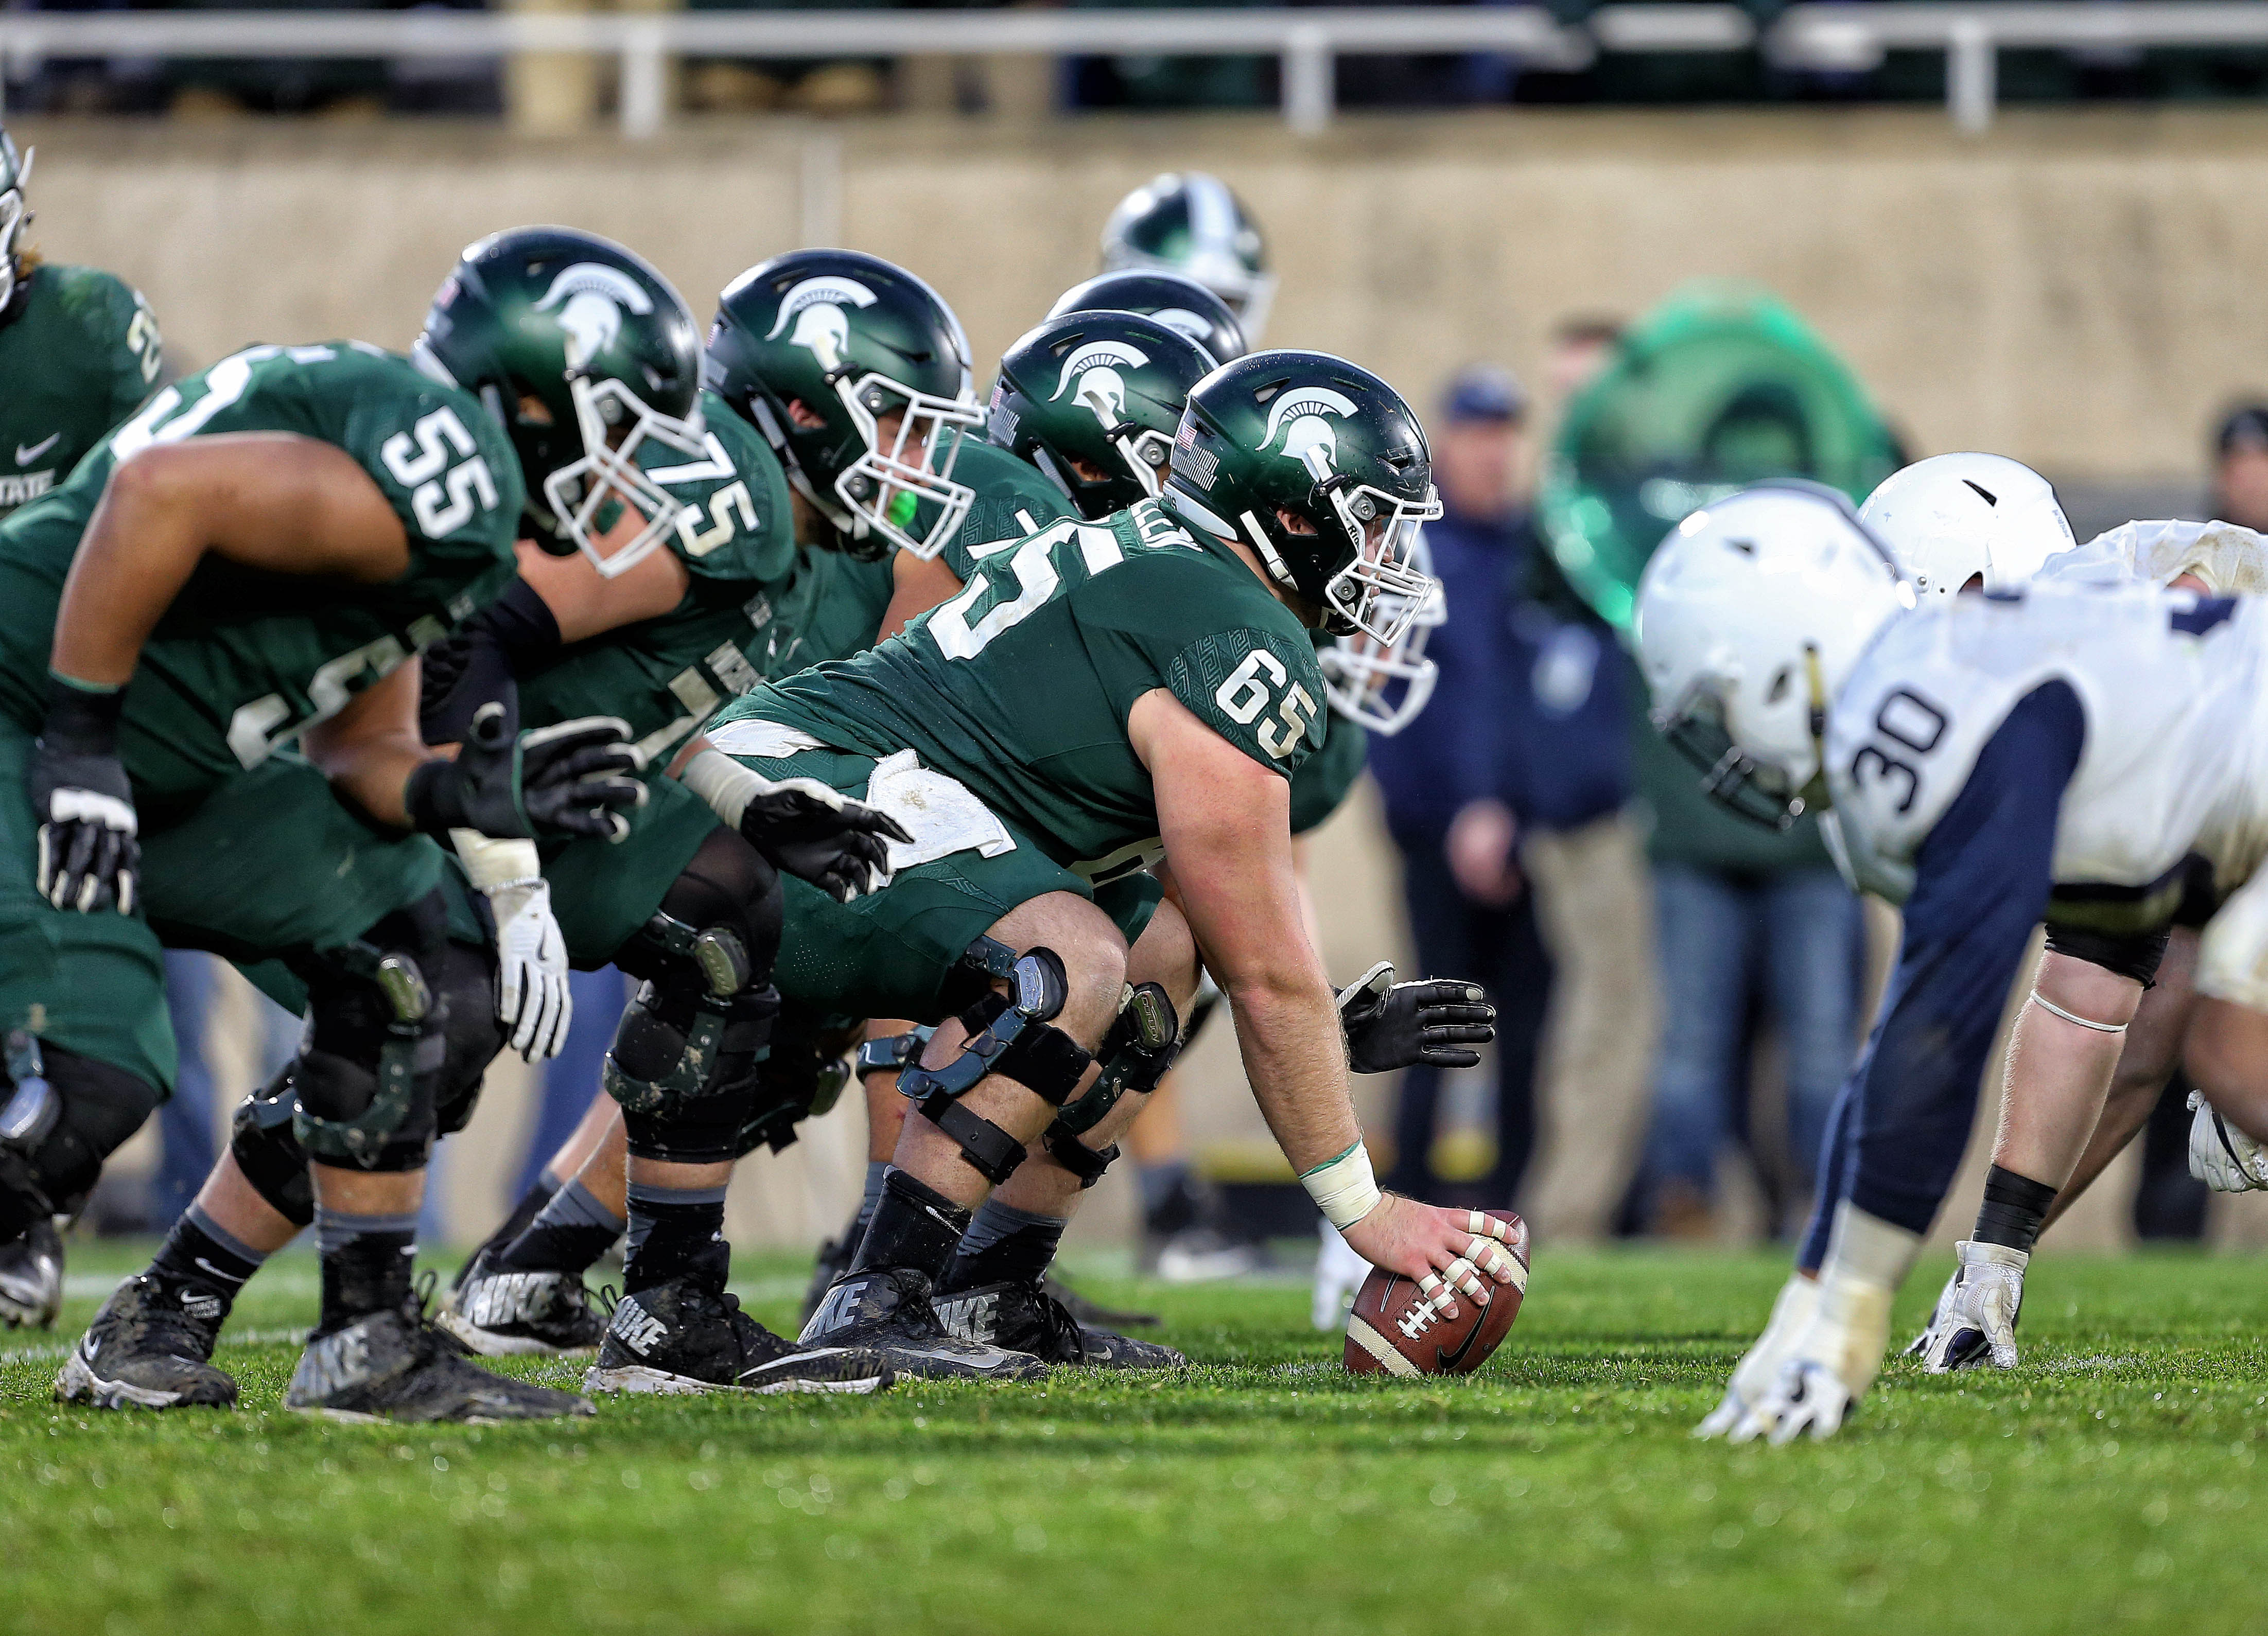 Michigan State C Brian Allen prepares to snap the ball against Penn St. in 2017